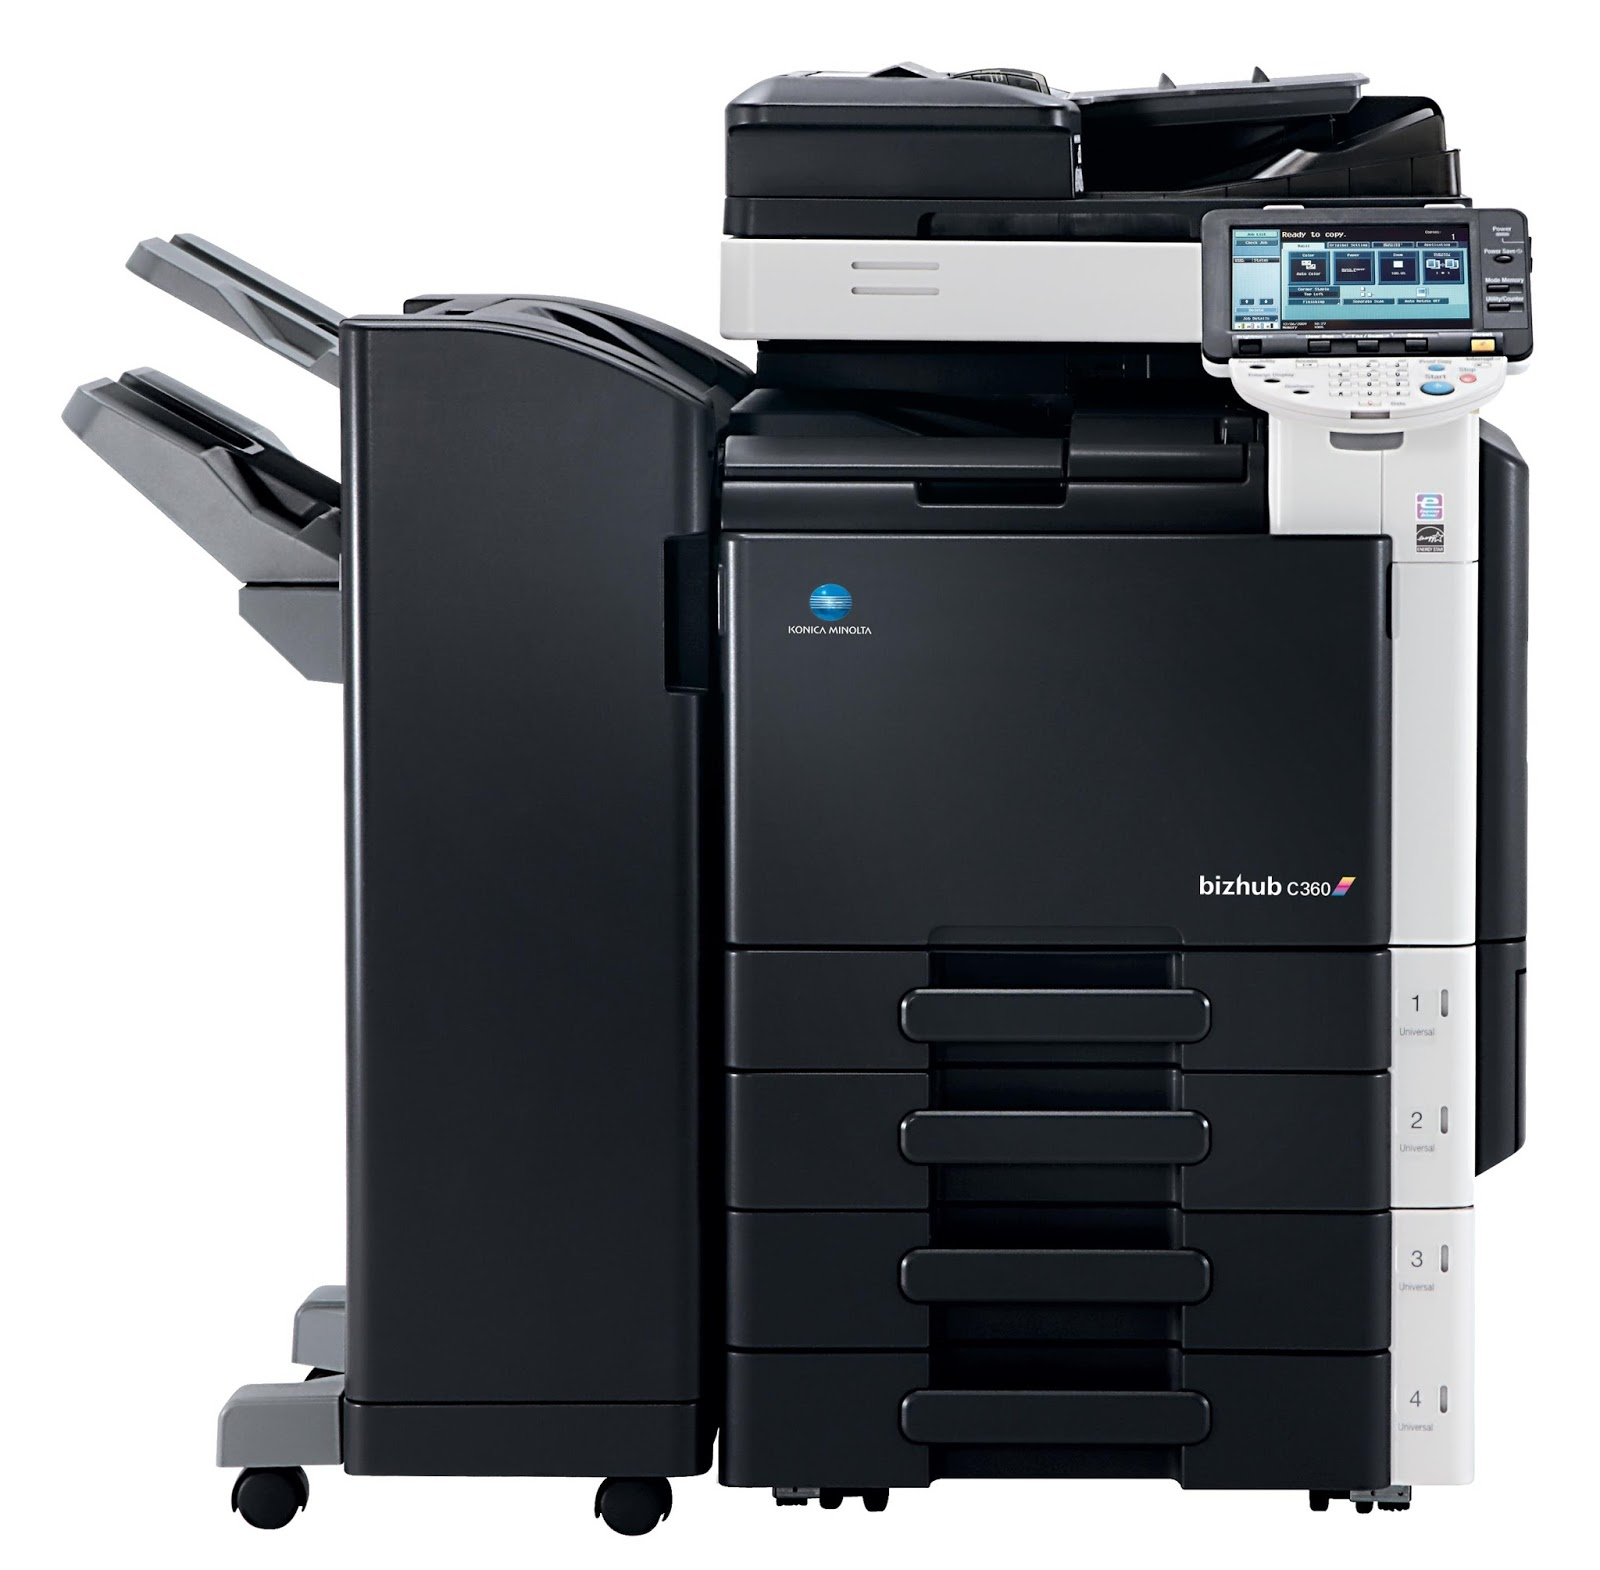 Konica Minolta Bizhub C280 Printer Driver Download